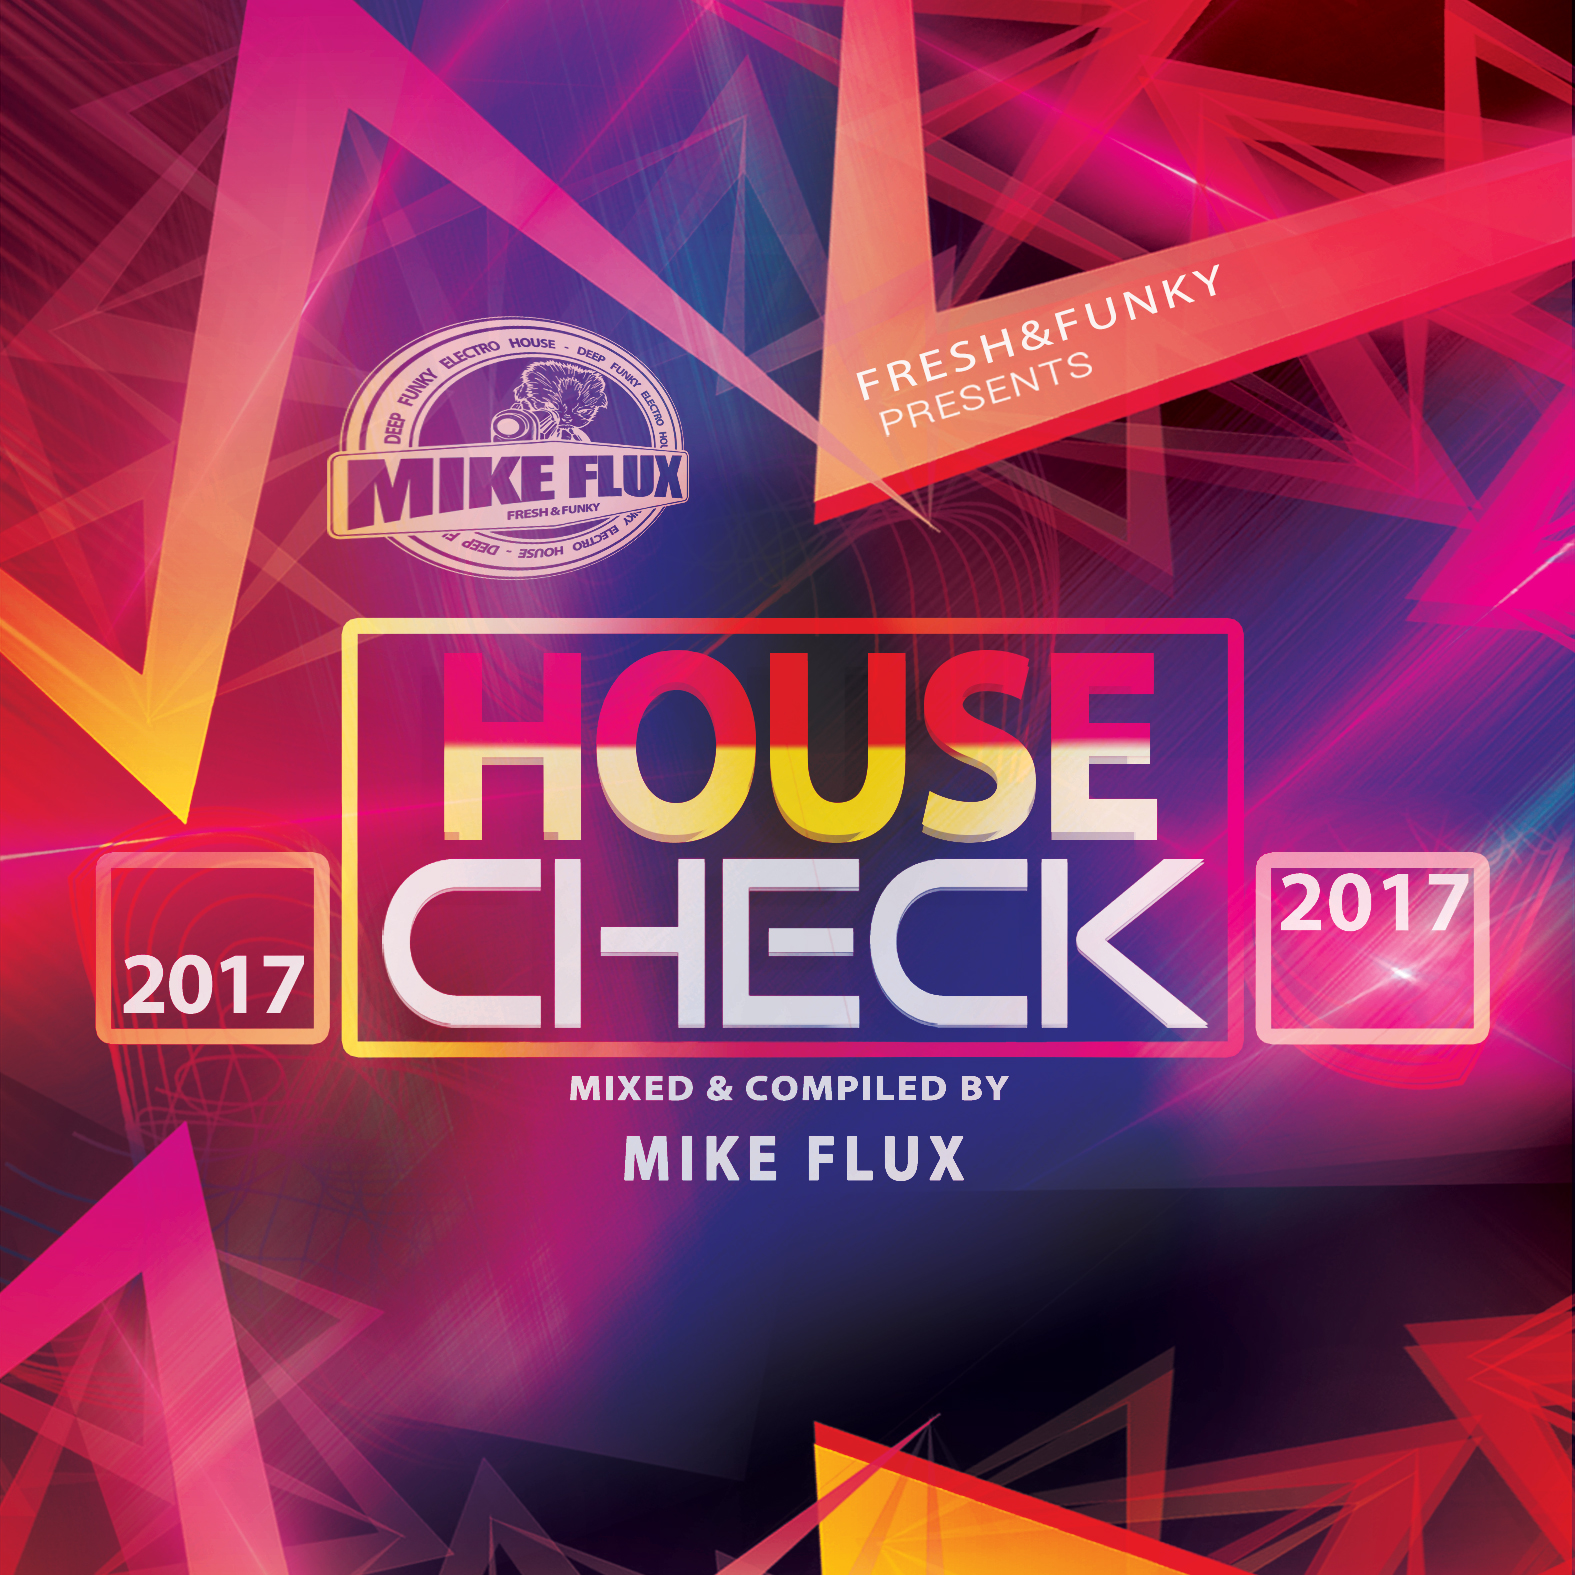 house check 2017 - mike flux